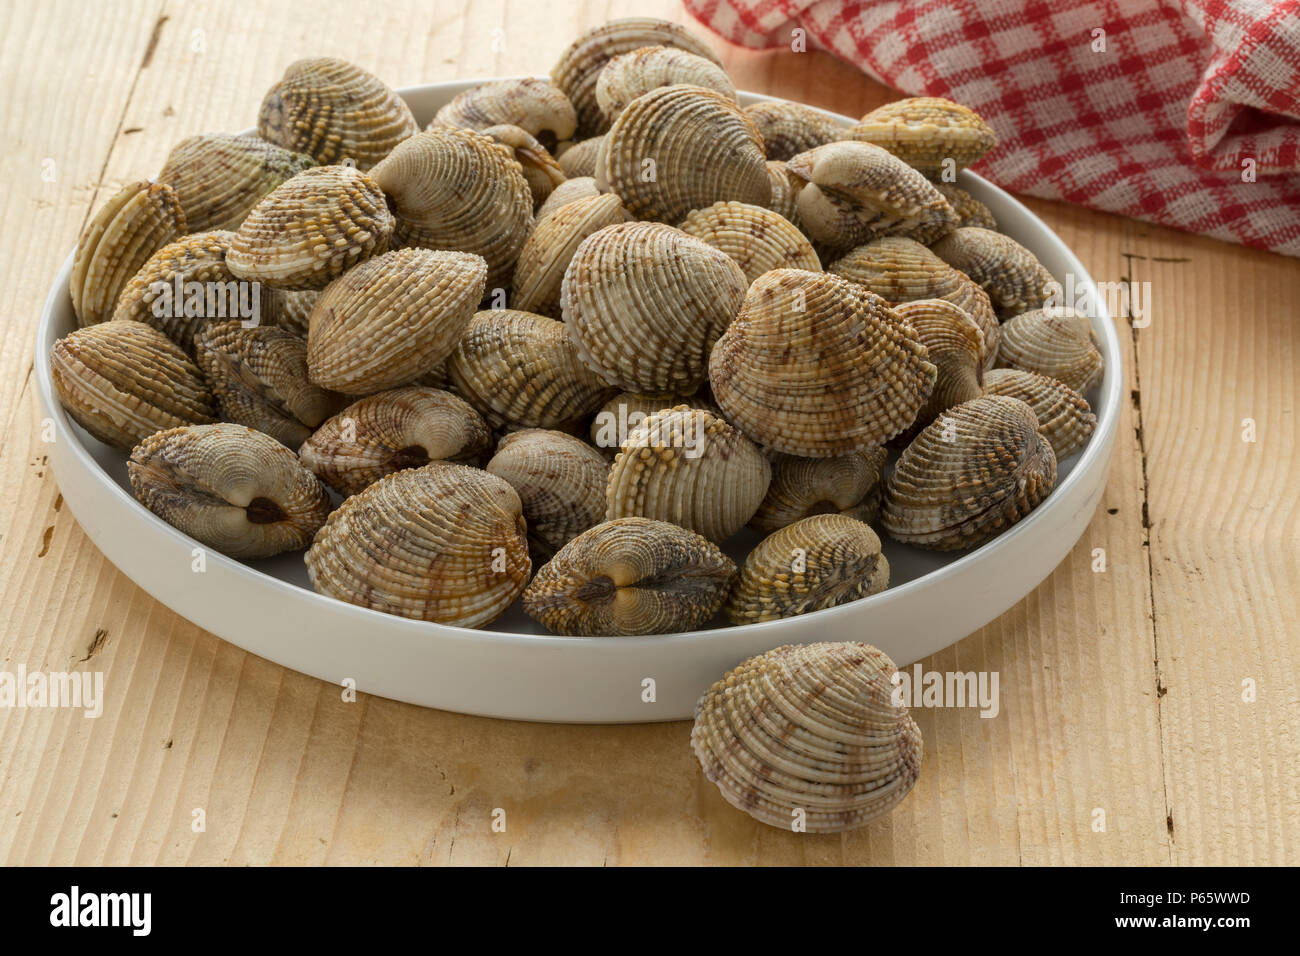 Dish with fresh raw closed warty venus clams for a meal - Stock Image